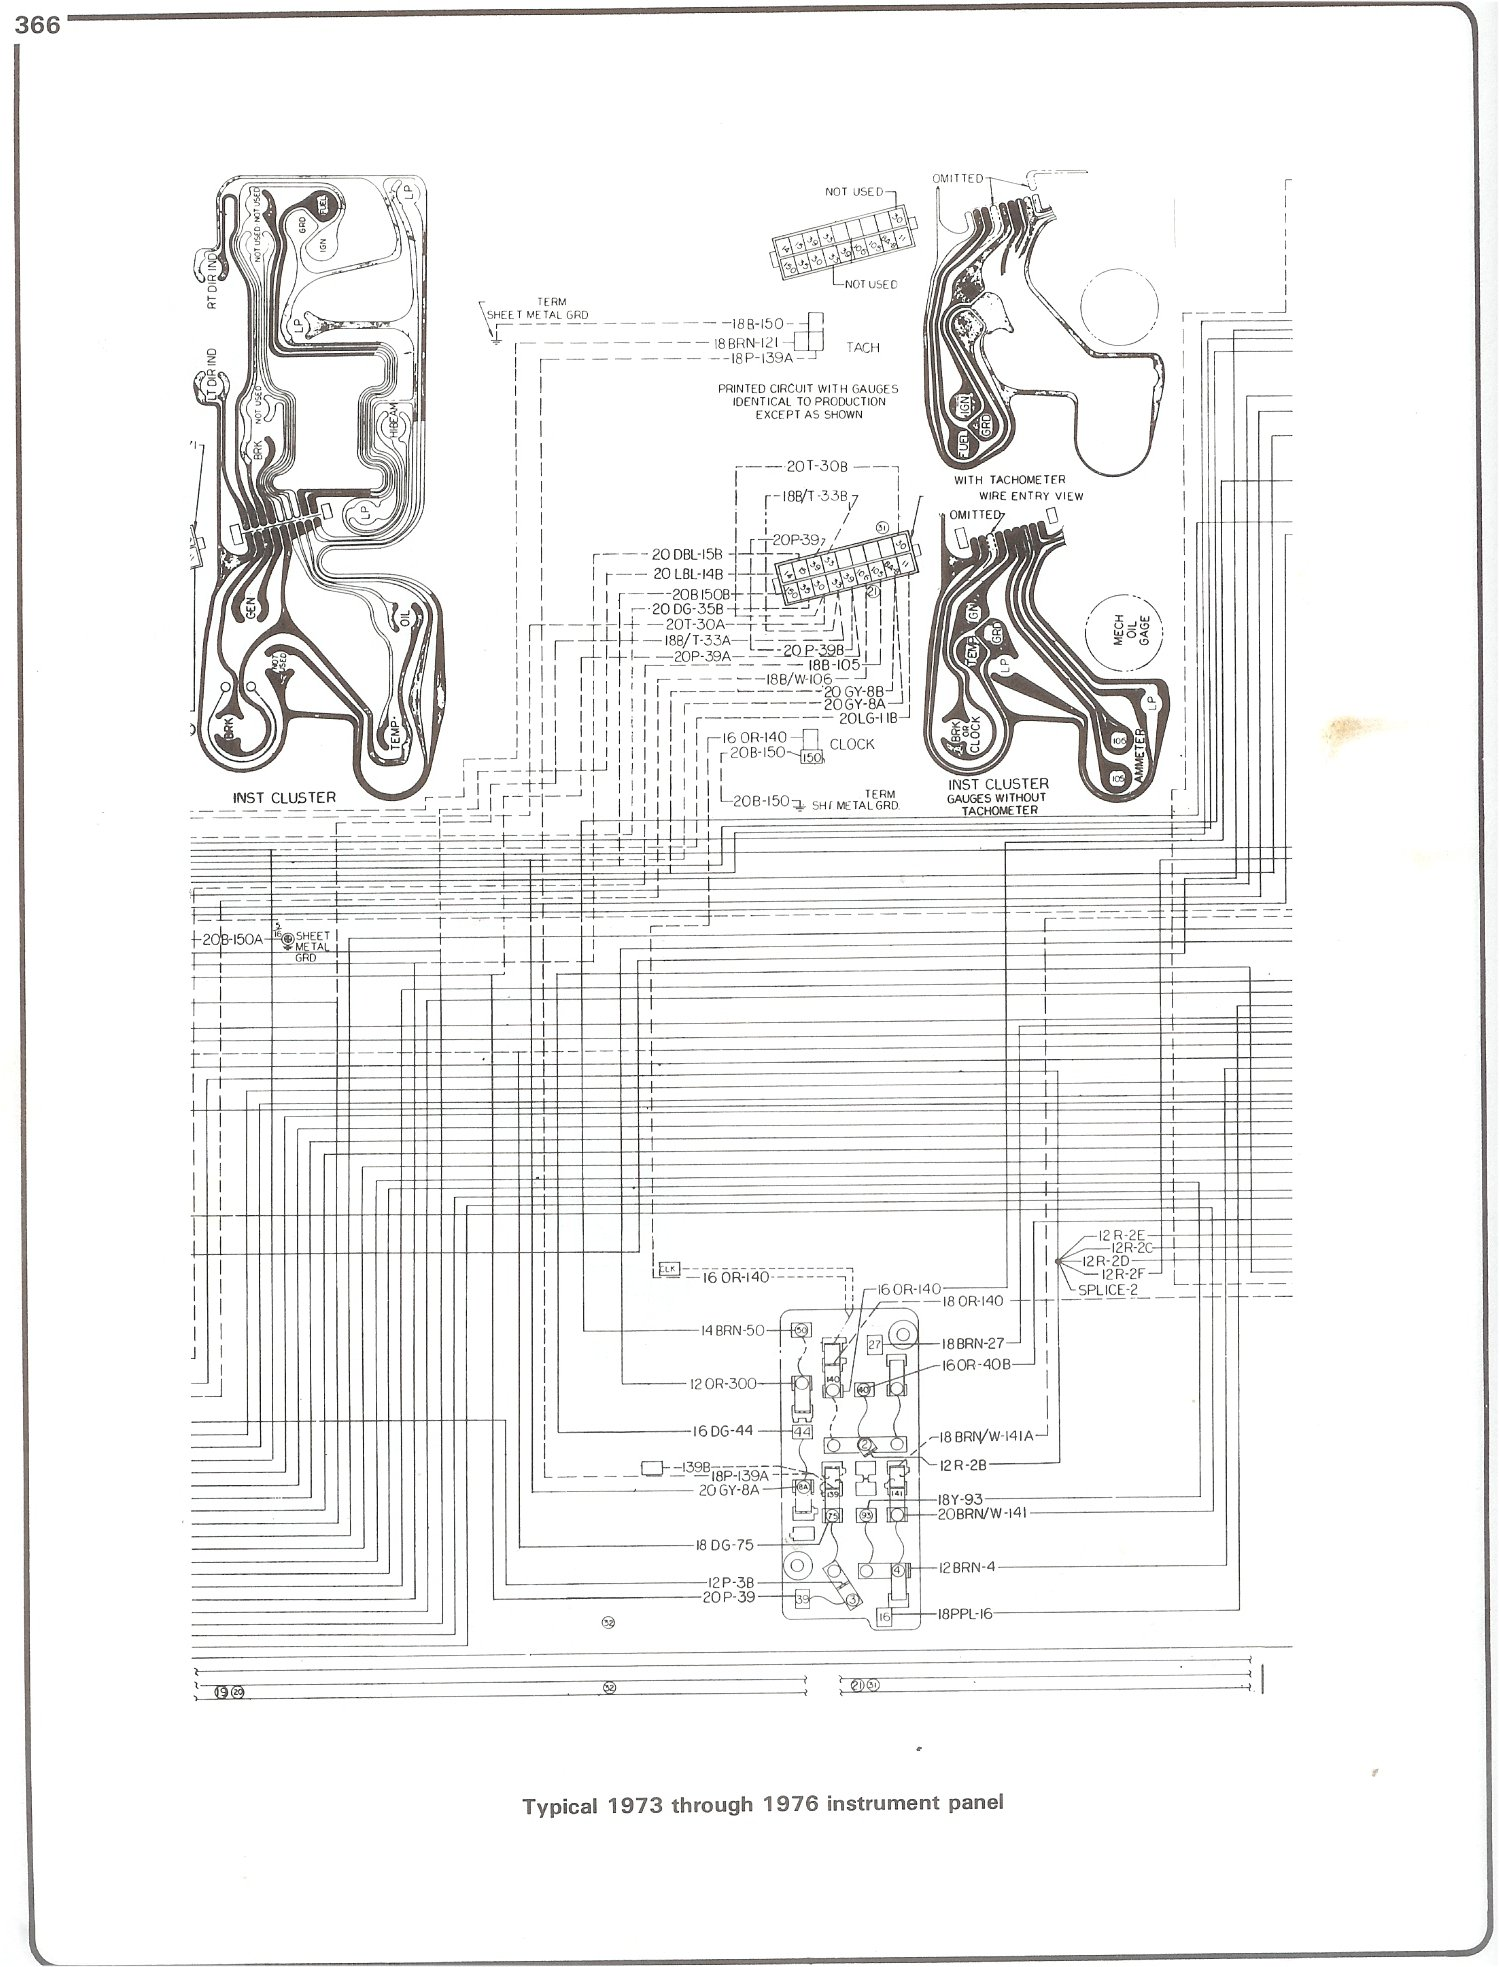 complete 73 87 wiring diagrams rh forum 73 87chevytrucks com Chevy Silverado Wiring Diagram Chevy Ignition Switch Wiring Diagram